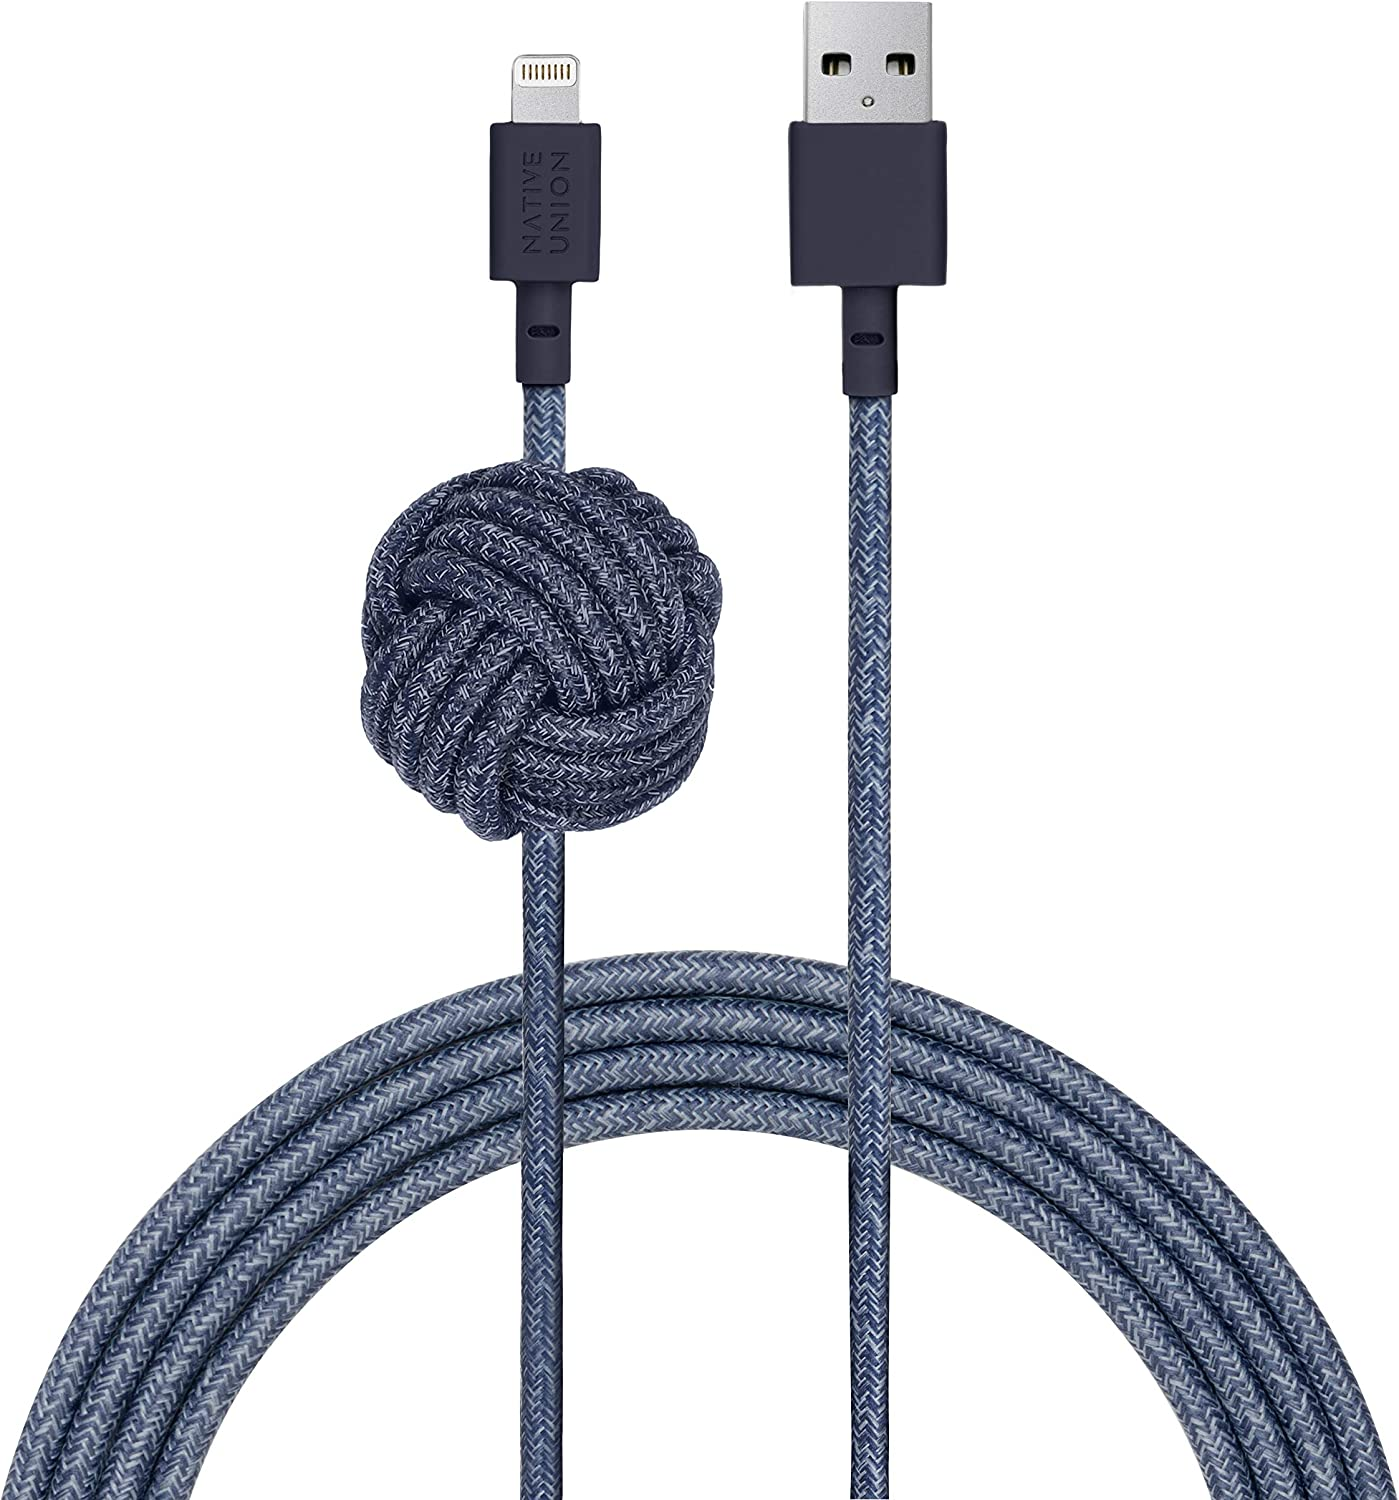 NATIVE UNION Night Cable USB-A to Lightning - 10ft Ultra-Strong Durable Lightning to USB Charging Cable with Weighted Knot [Apple MFi Certified] for iPhone/iPad (Indigo)